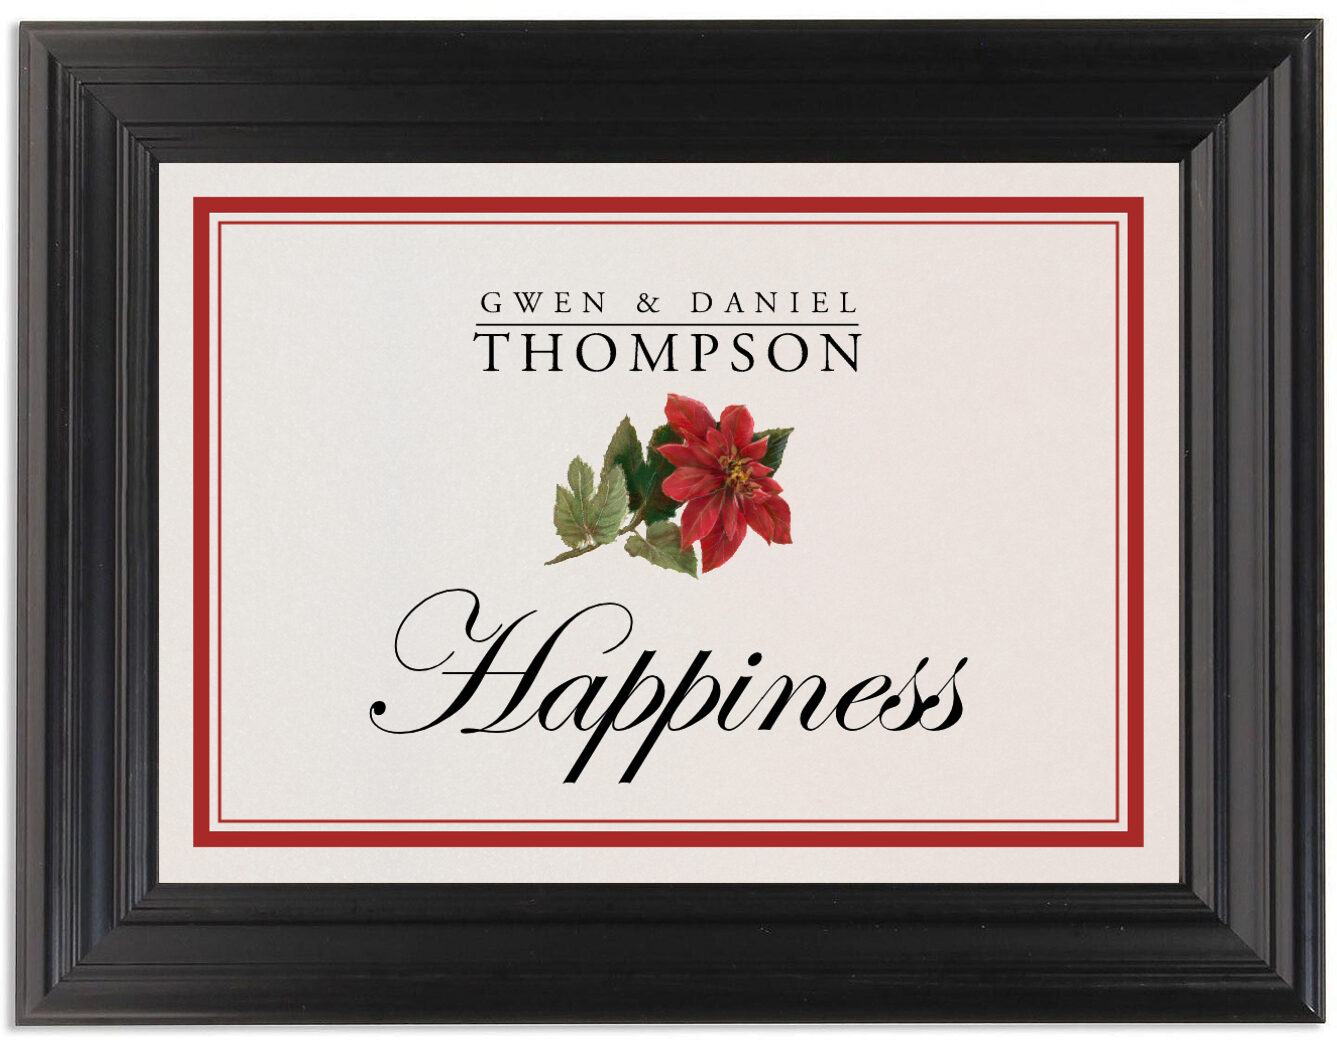 Framed Photograph of Poinsettia Table Names